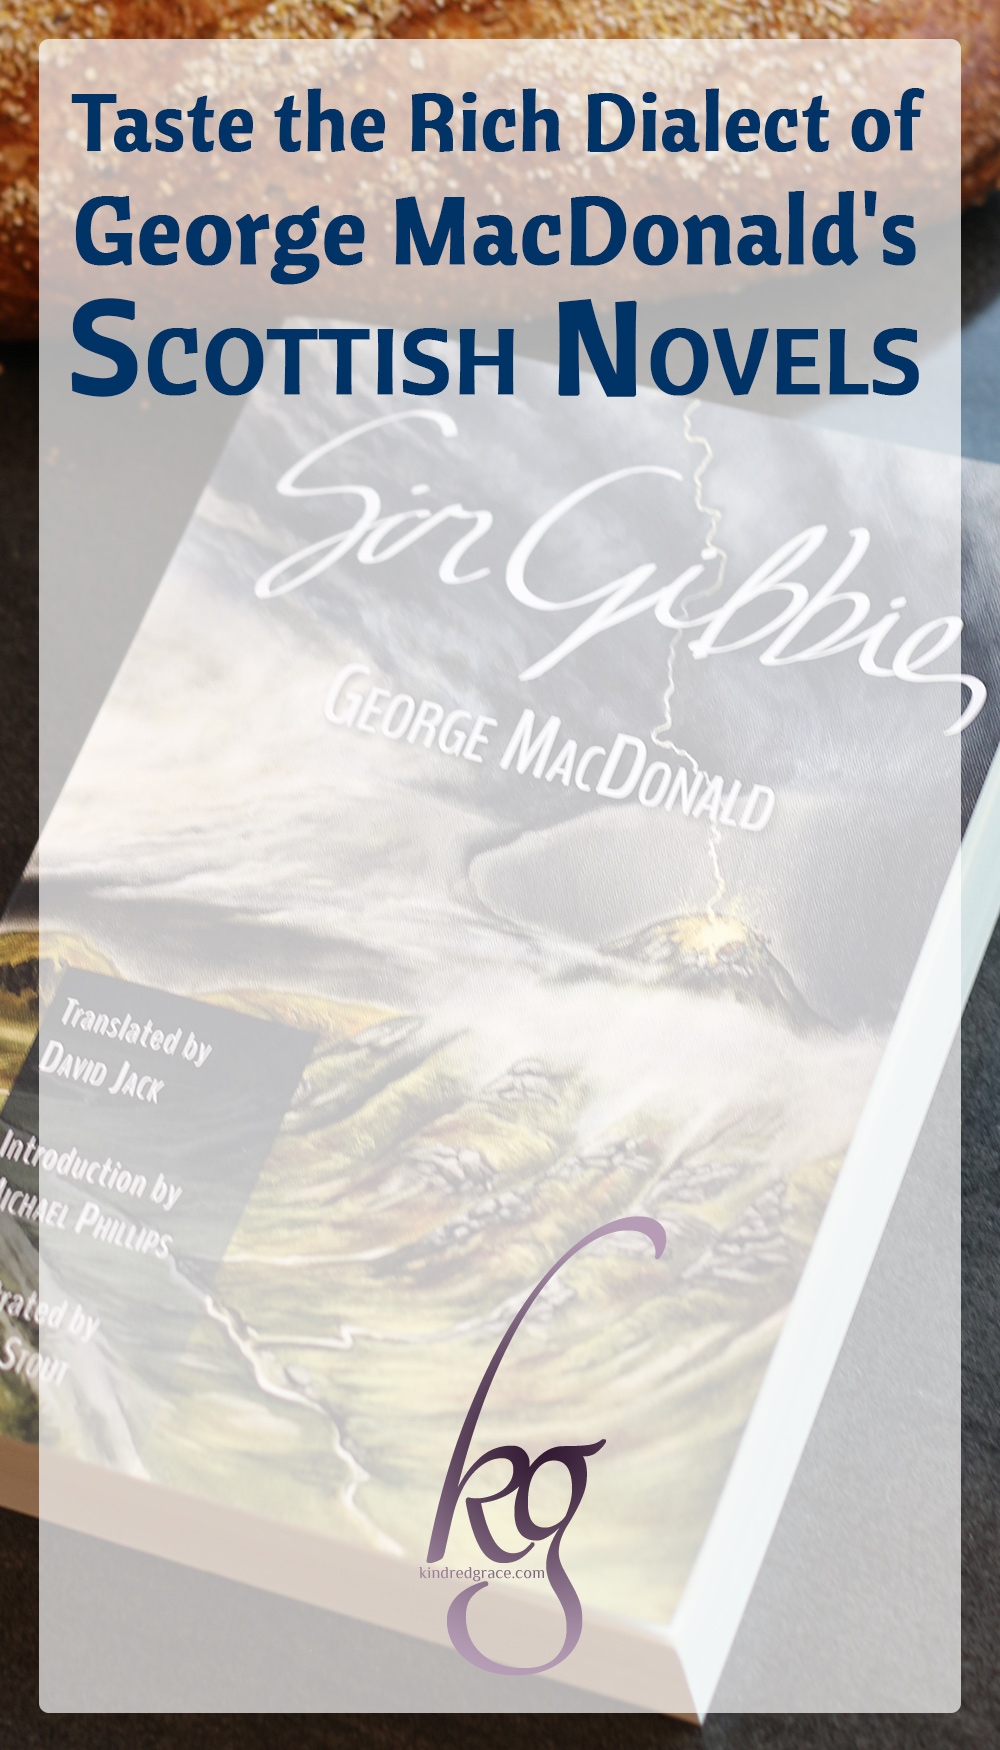 "David Jack says, ""My translations are more of a leisurely indulgence, due to their length and the fact that (with the Scottish novels) the original language is a huge part of the authenticity of the land into which you'll be transporting yourself for the duration of the stories."" via @KindredGrace"